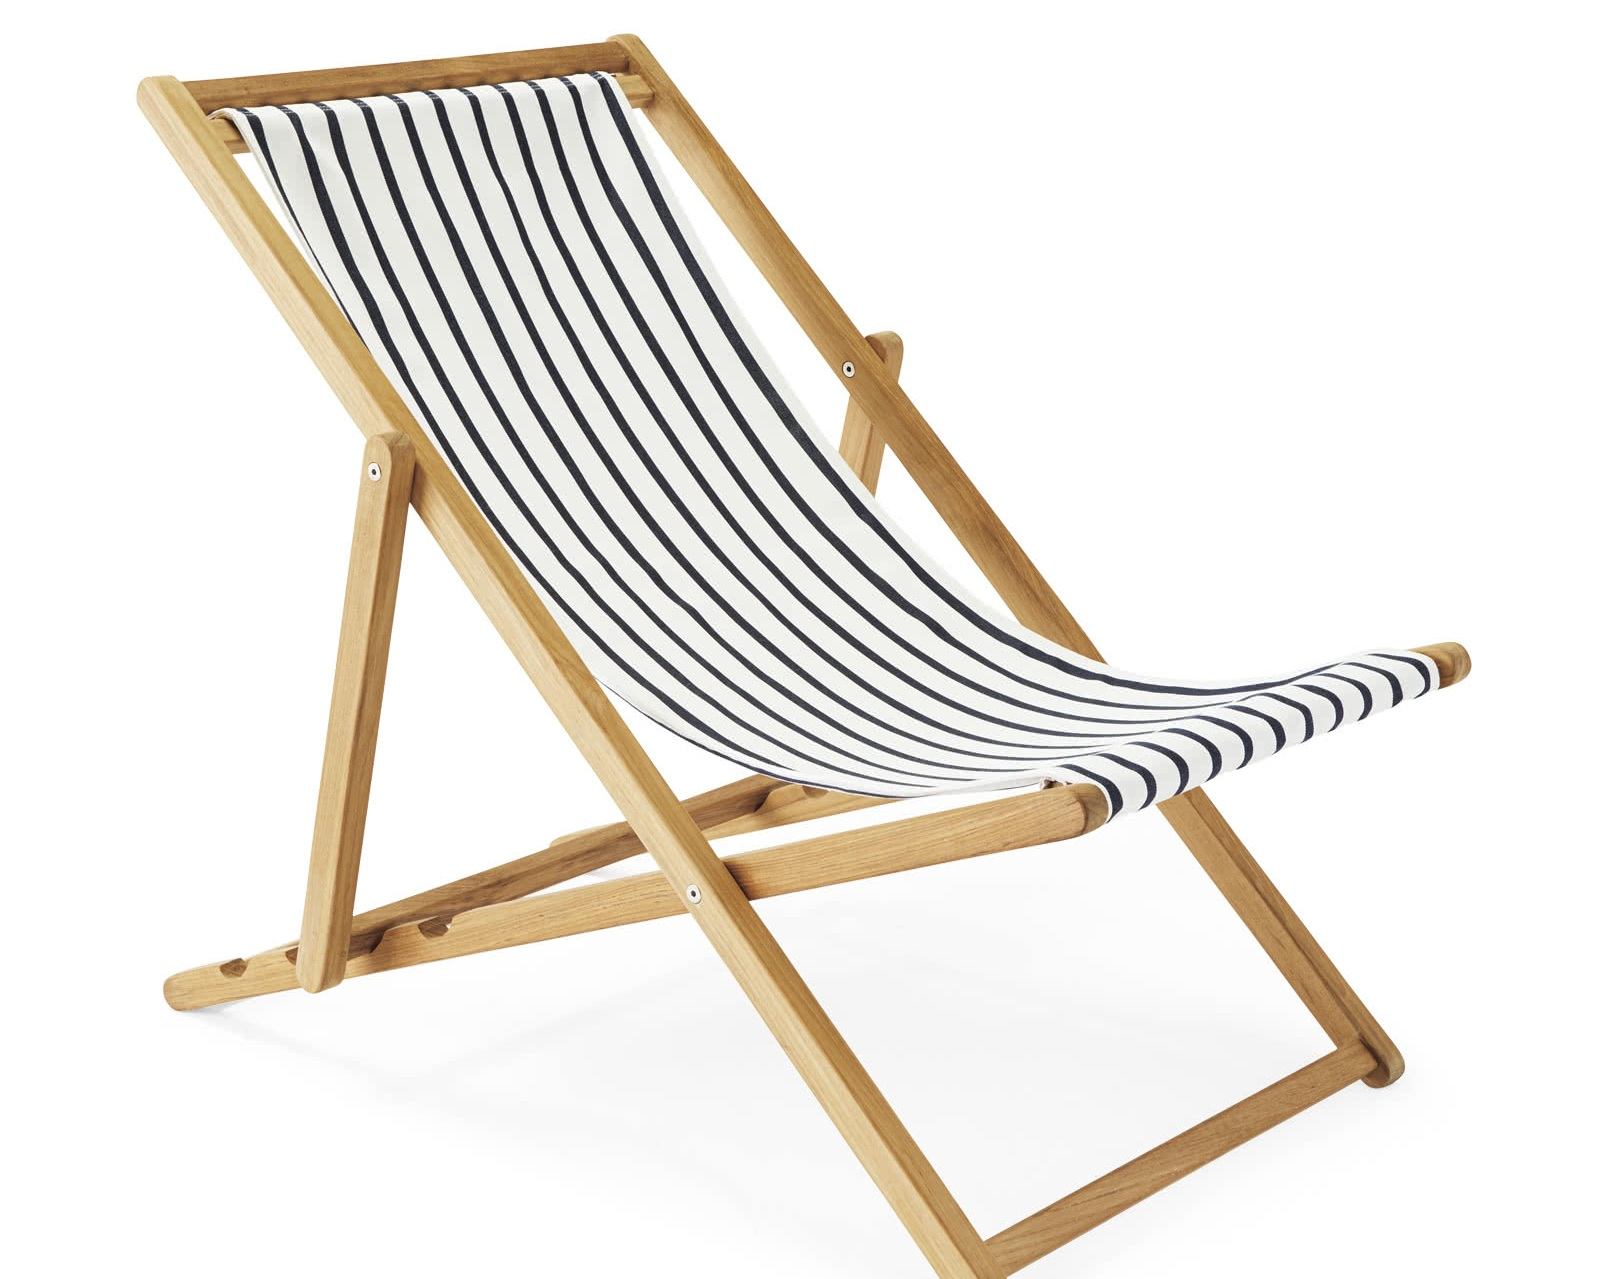 sling chair - Striped teak sling chair, $358; Serena & Lily